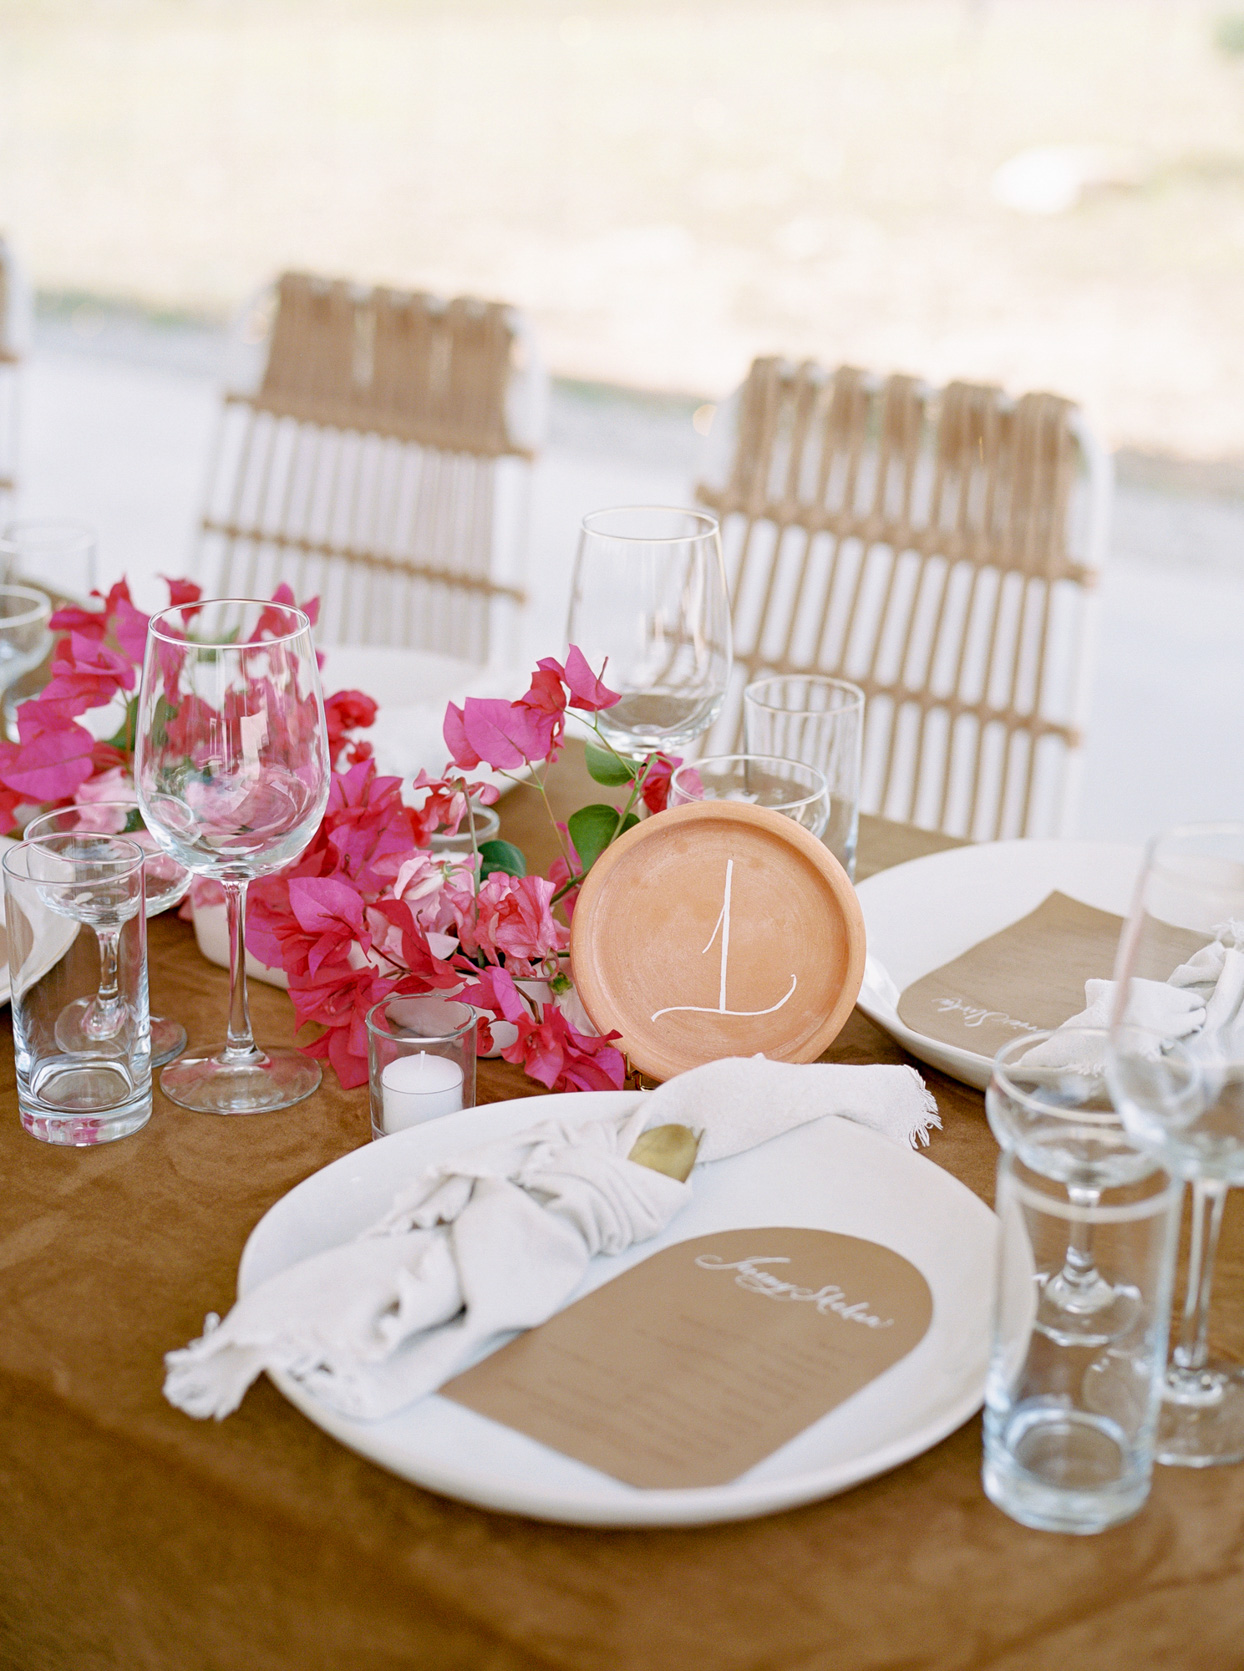 reception table with table numbers and place settings